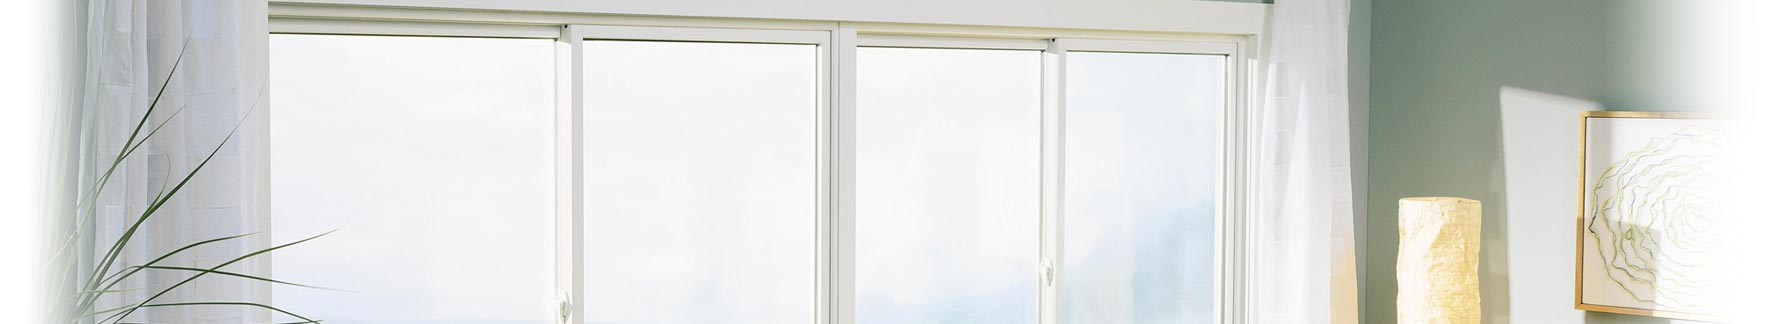 Why choose us renewal by andersen of greater for Replacement slider windows